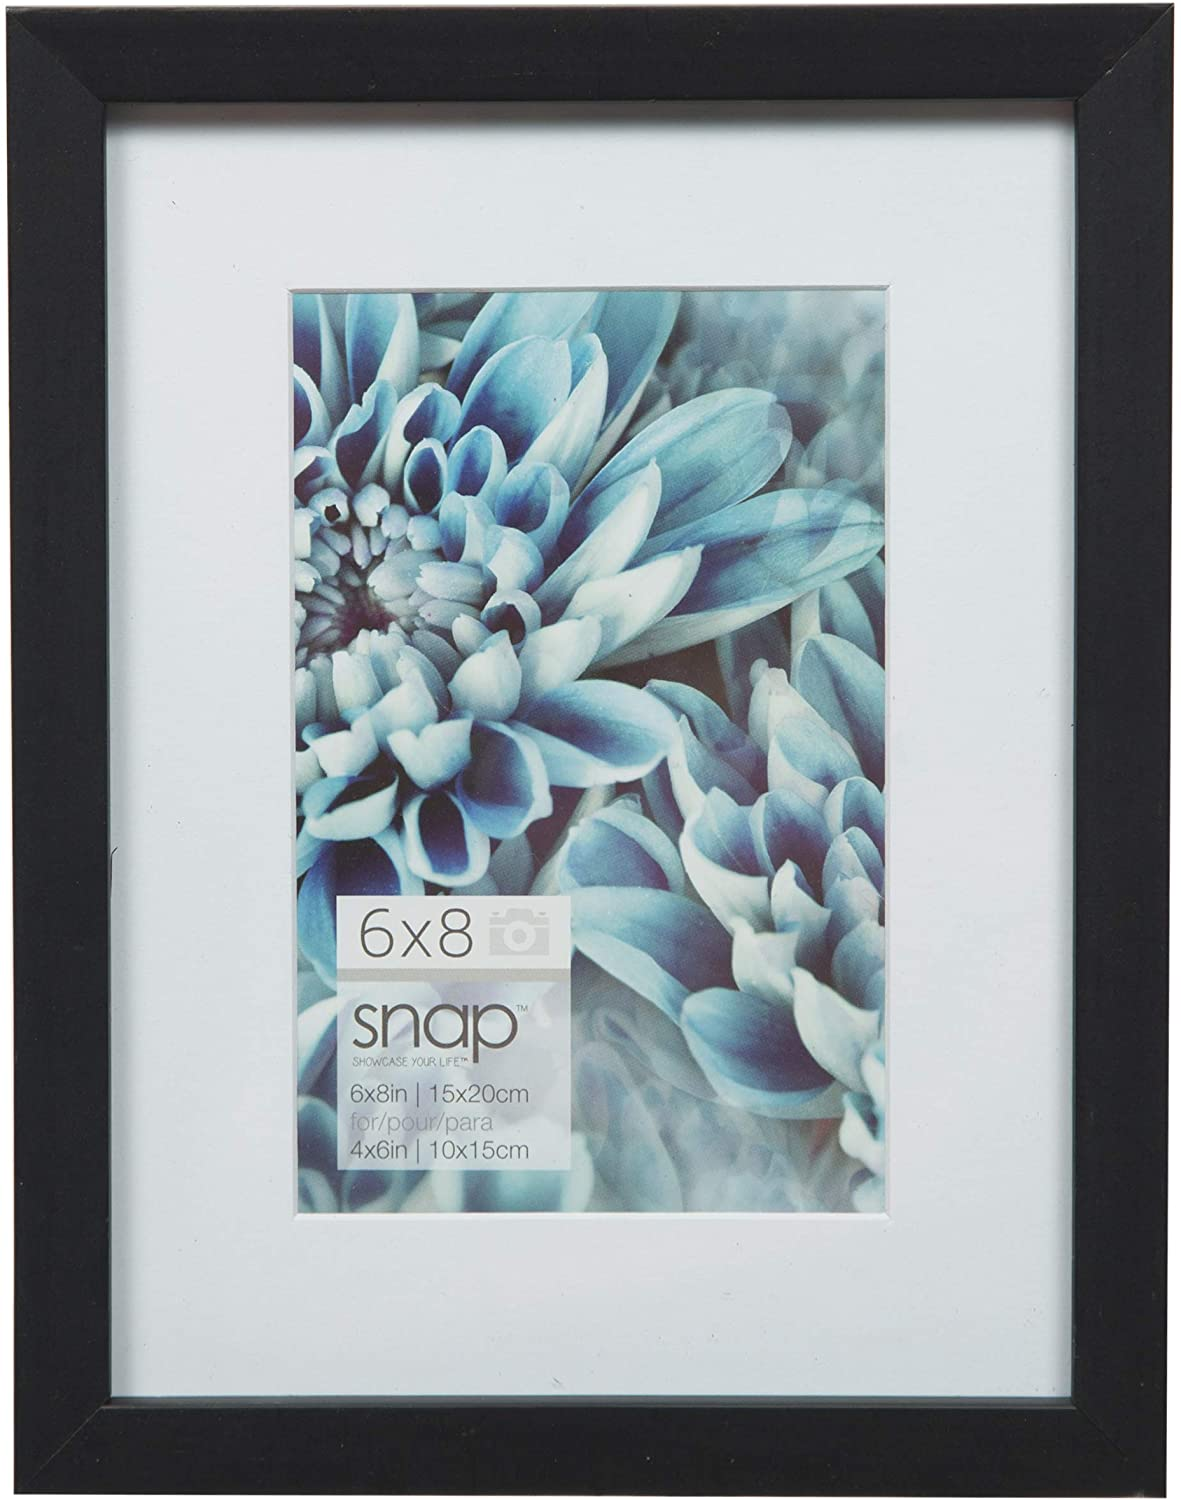 Snap Wall Mount Mat Picture Frame, 6 inches x 8 inches, Black